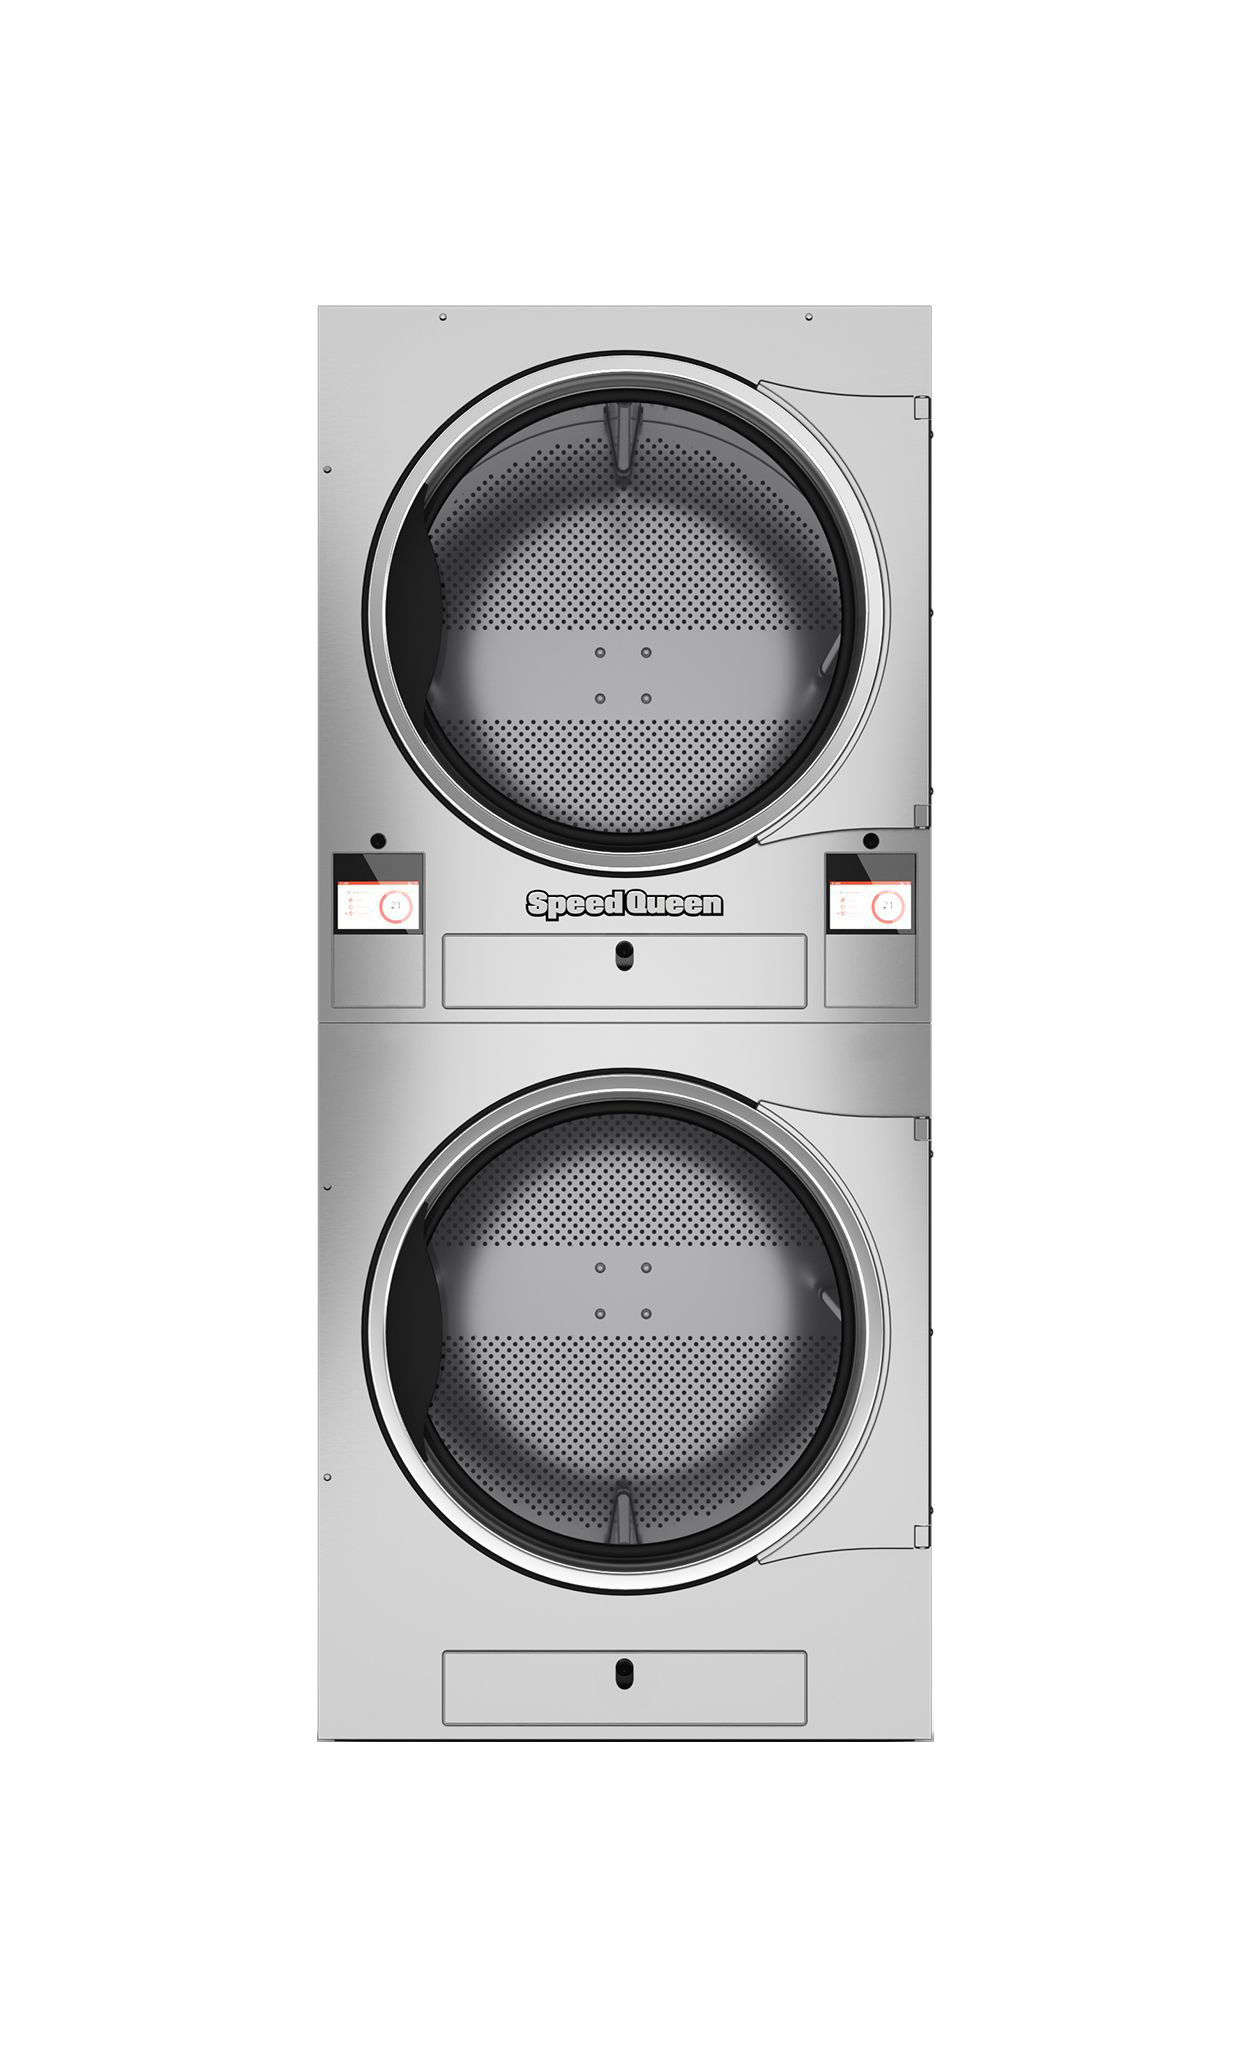 Stack Tumble Dryers Na Speed Queen Commercial